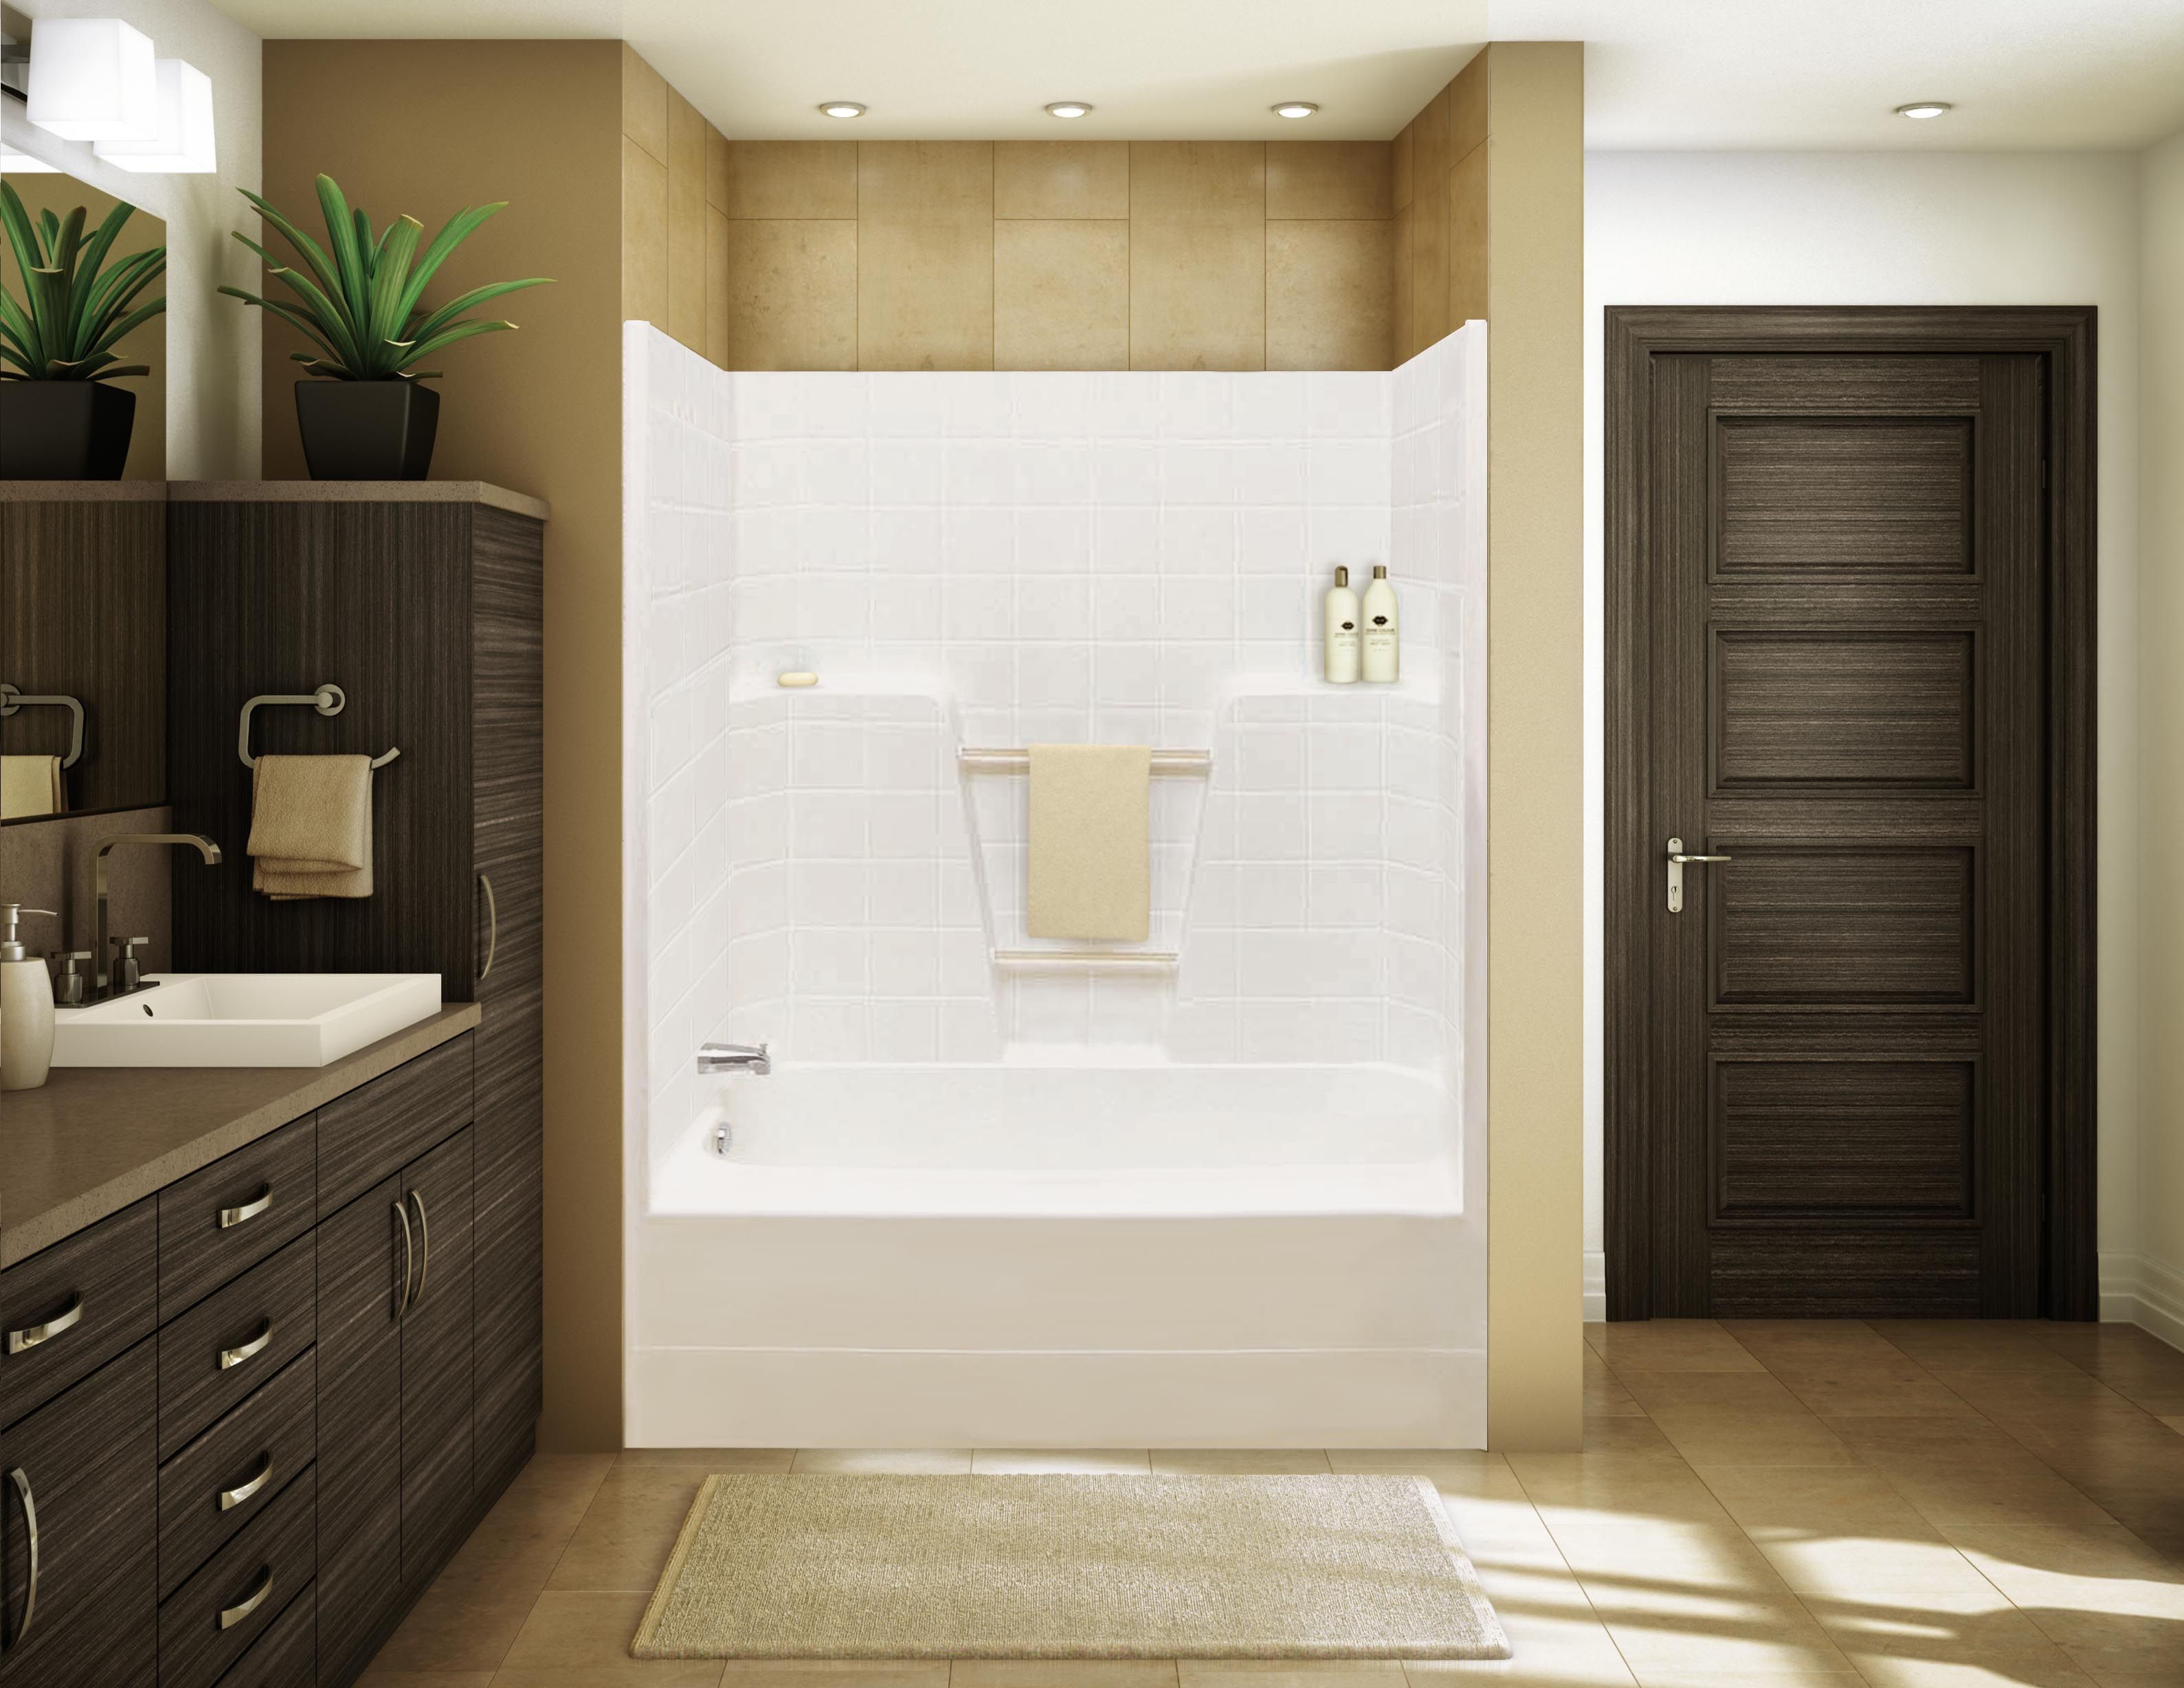 MAAX Tub Installation   TSTEA60 Alcove or Tub showers bathtub   MAAX  ProfessionalMAAX Tub Installation   TSTEA60 Alcove or Tub showers bathtub  . Maax Tub Shower Combo. Home Design Ideas